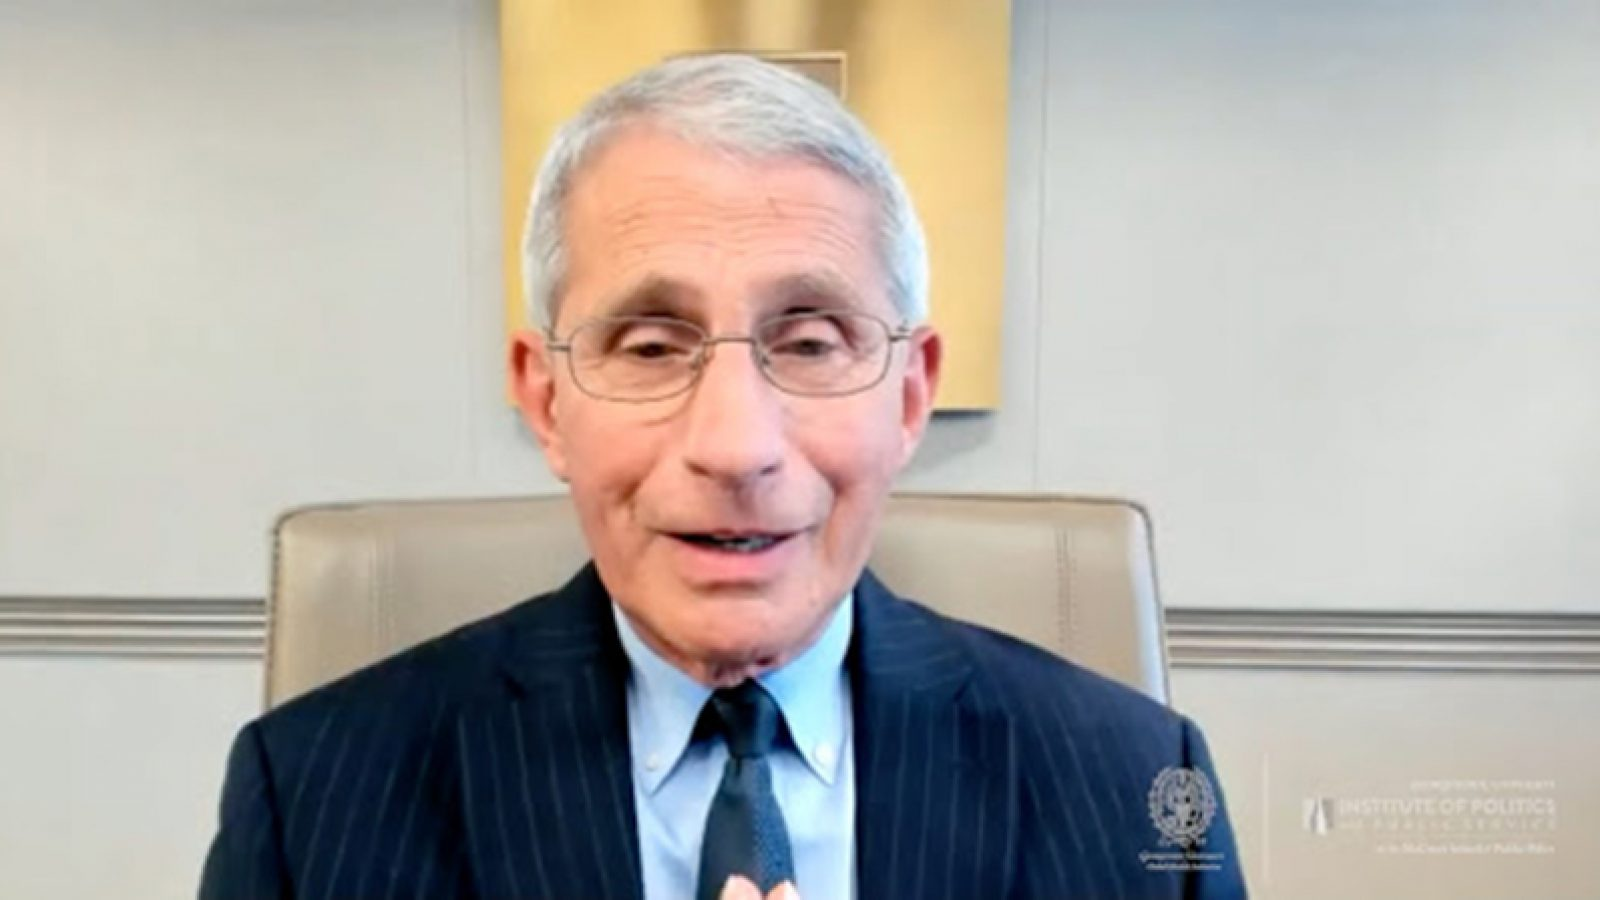 Dr. Anthony Fauci on Zoom